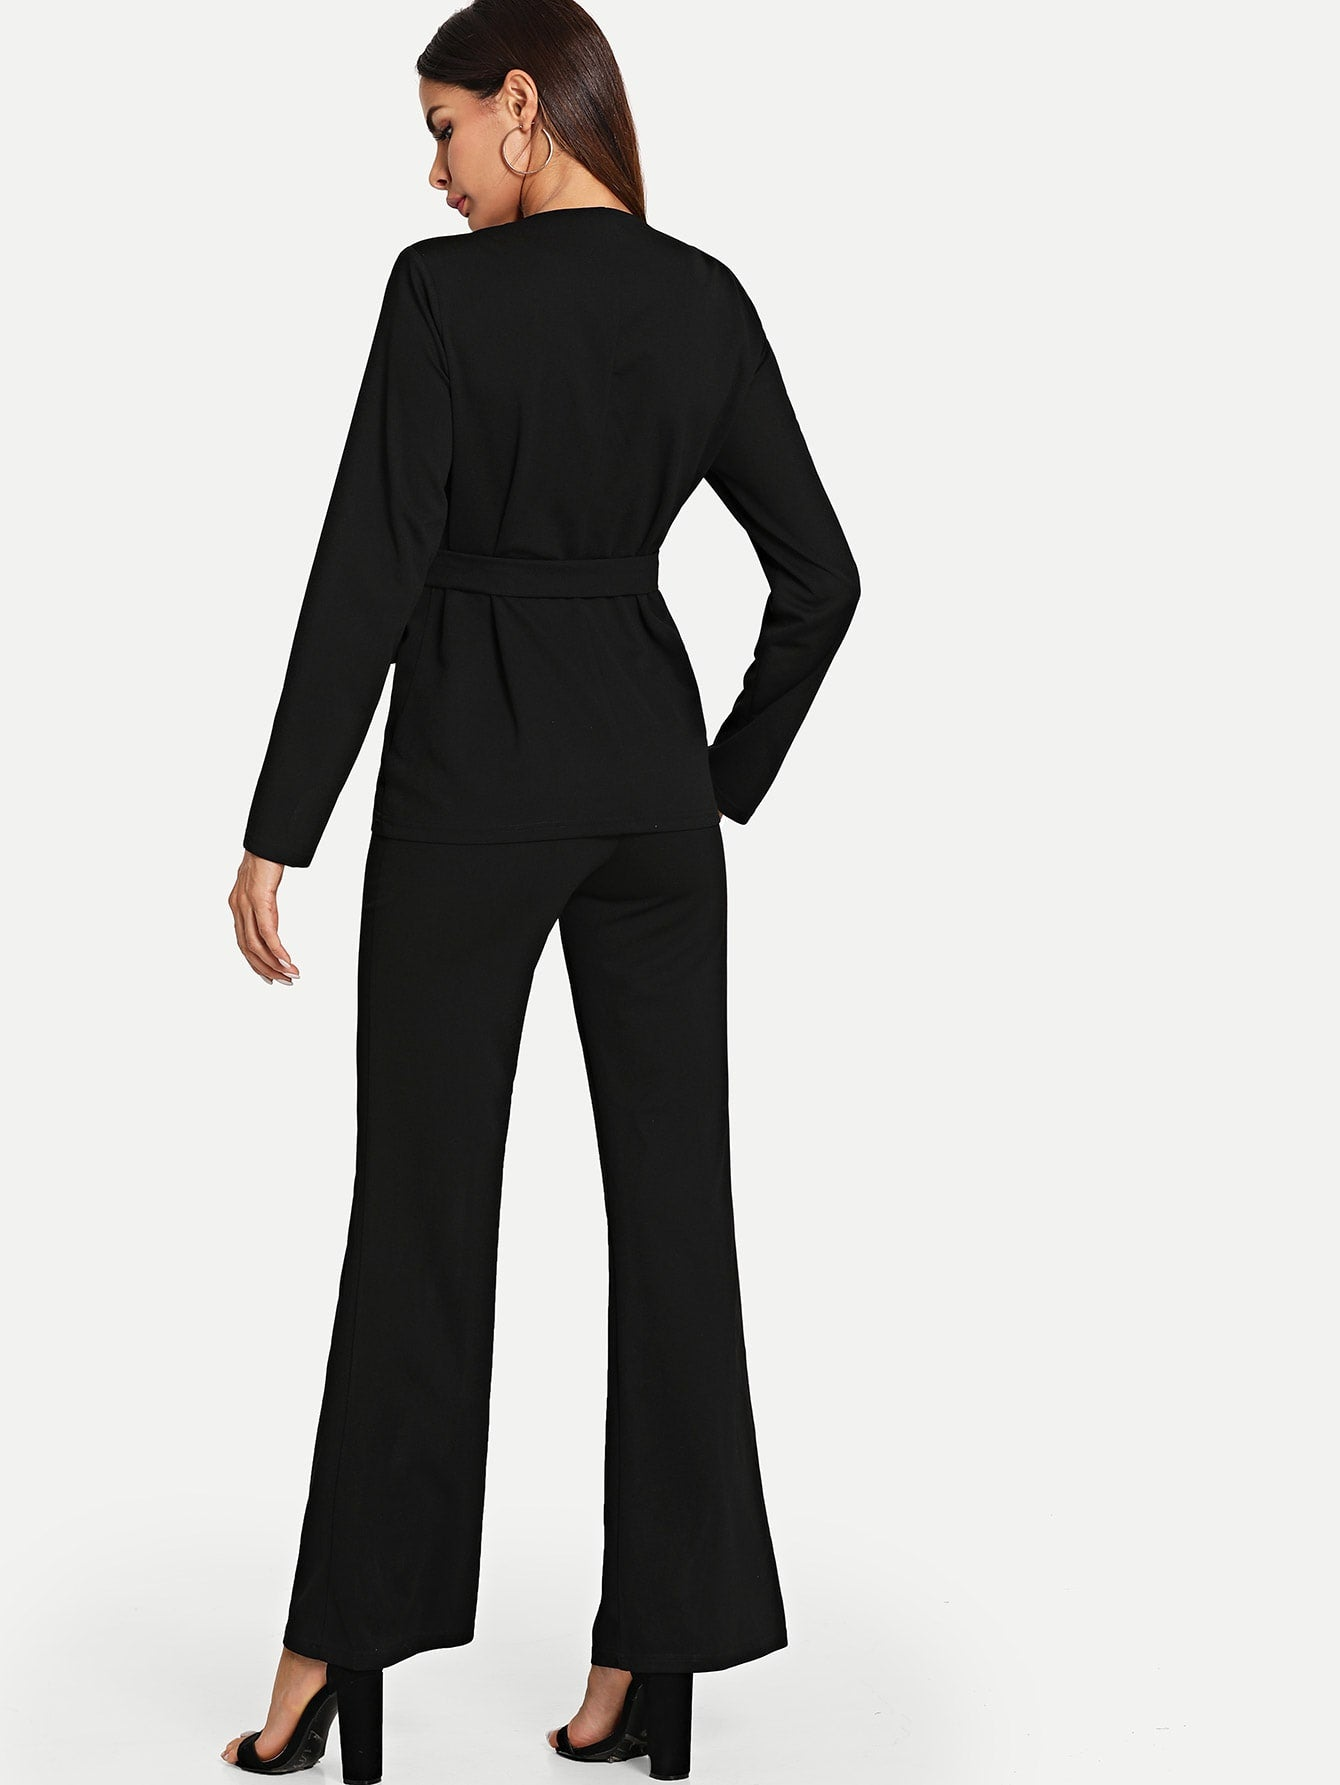 Self Belted Wrap Top & Flare Leg Pants Set